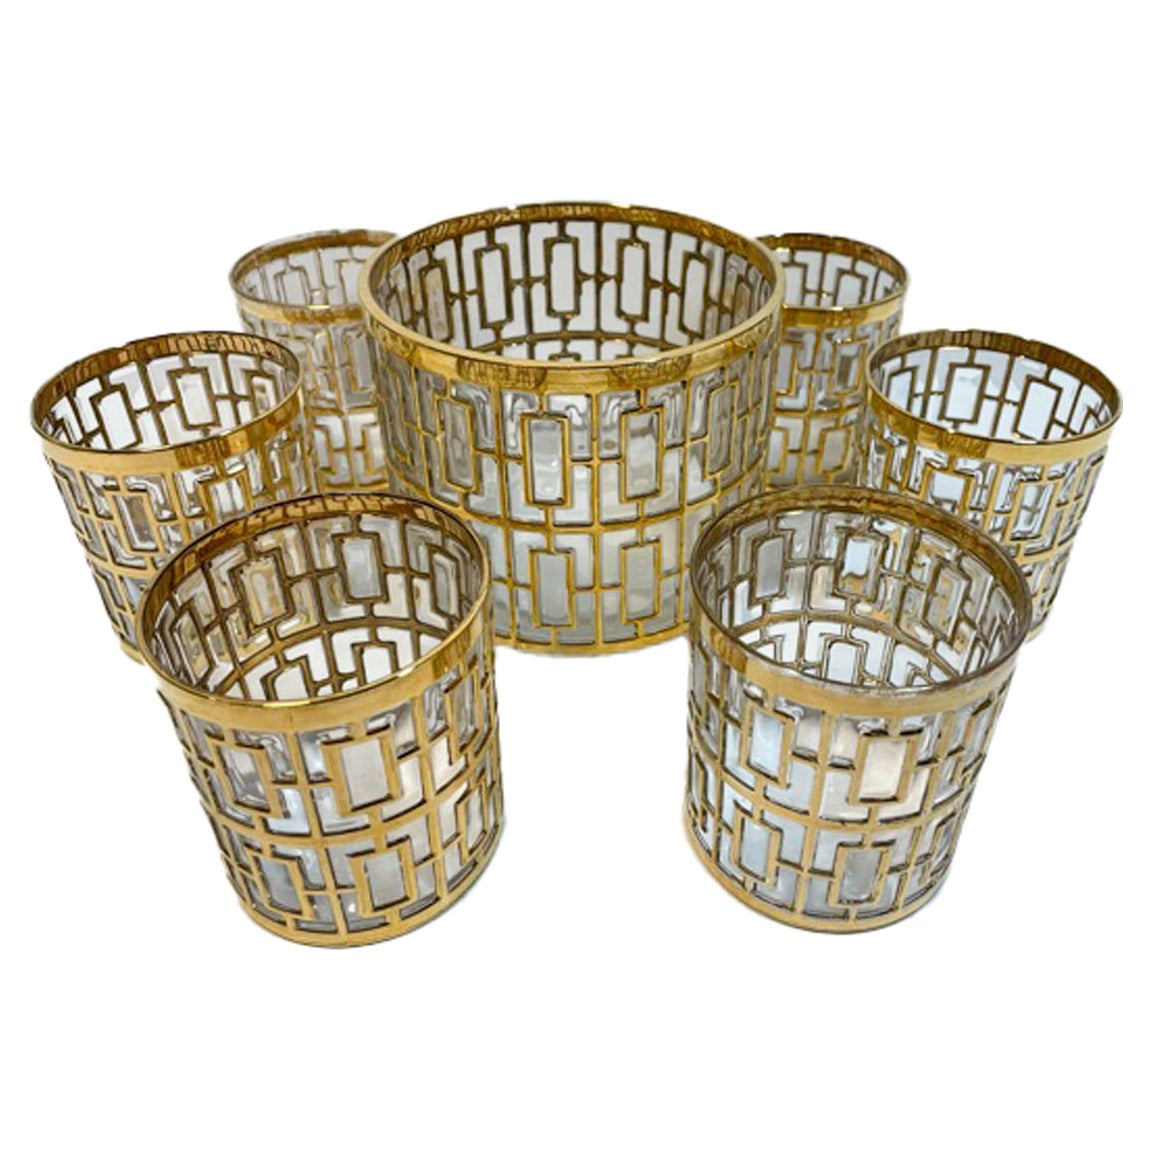 Vintage Imperial Glass Co., Shoji Pattern Ice Bowl and 6 Rocks Glasses